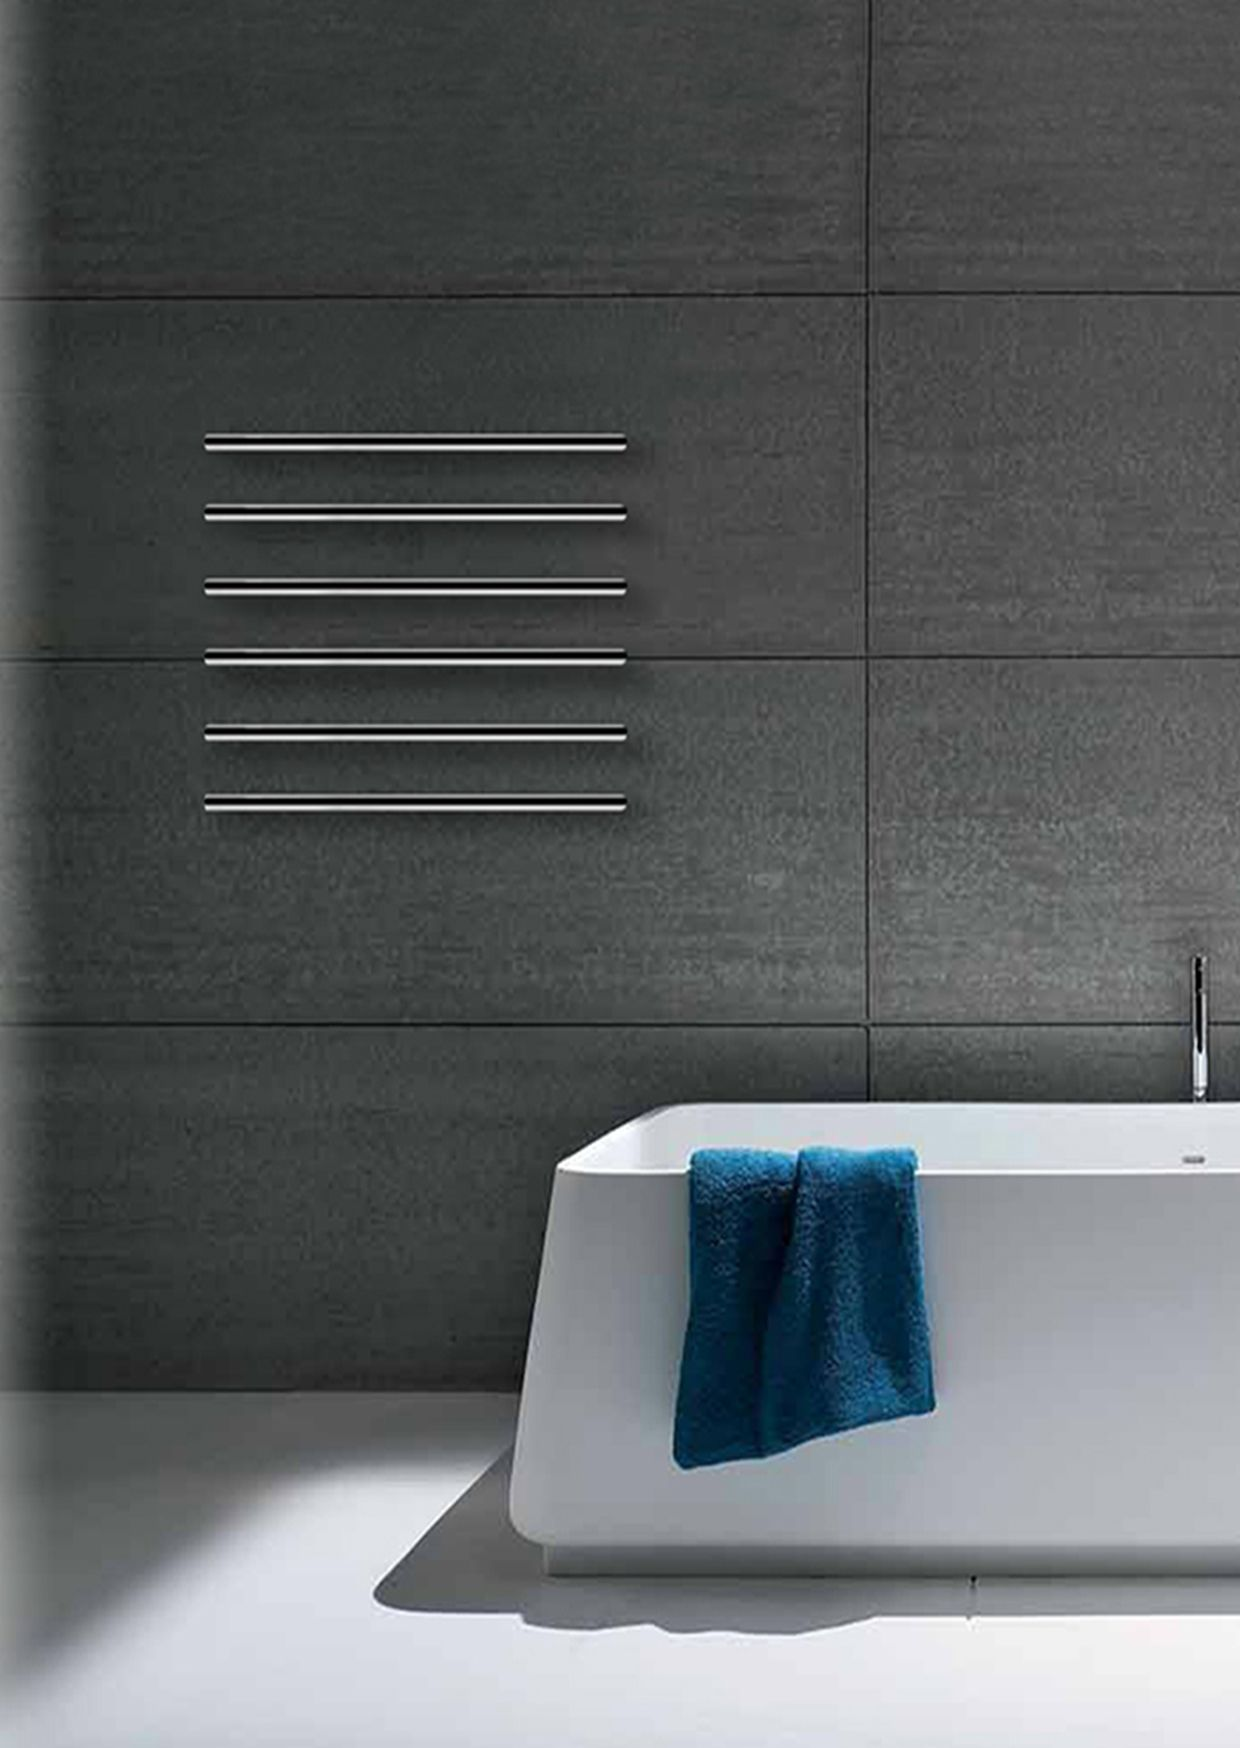 s che serviette design vd 1611 radiators bathroom designs and minimalist bathroom design. Black Bedroom Furniture Sets. Home Design Ideas